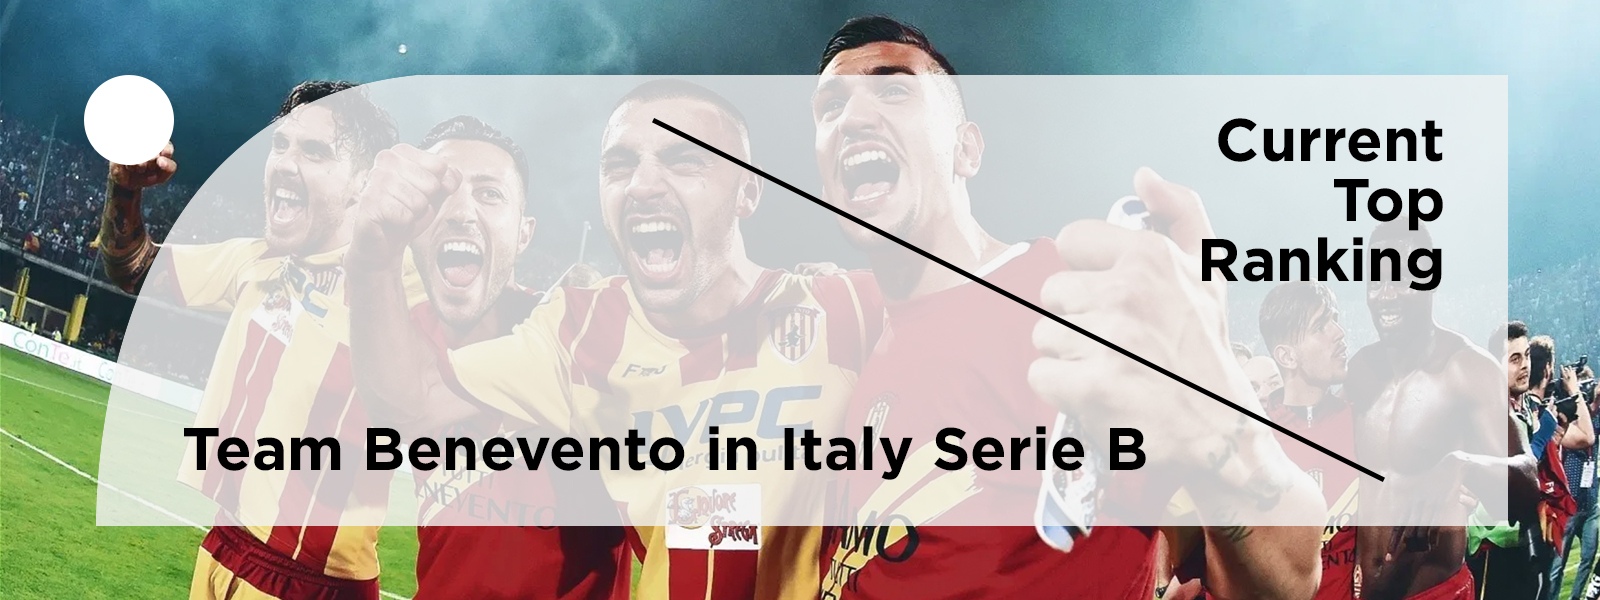 Top Ranking Team - Benevento Calcio In Italy Serie B 2020